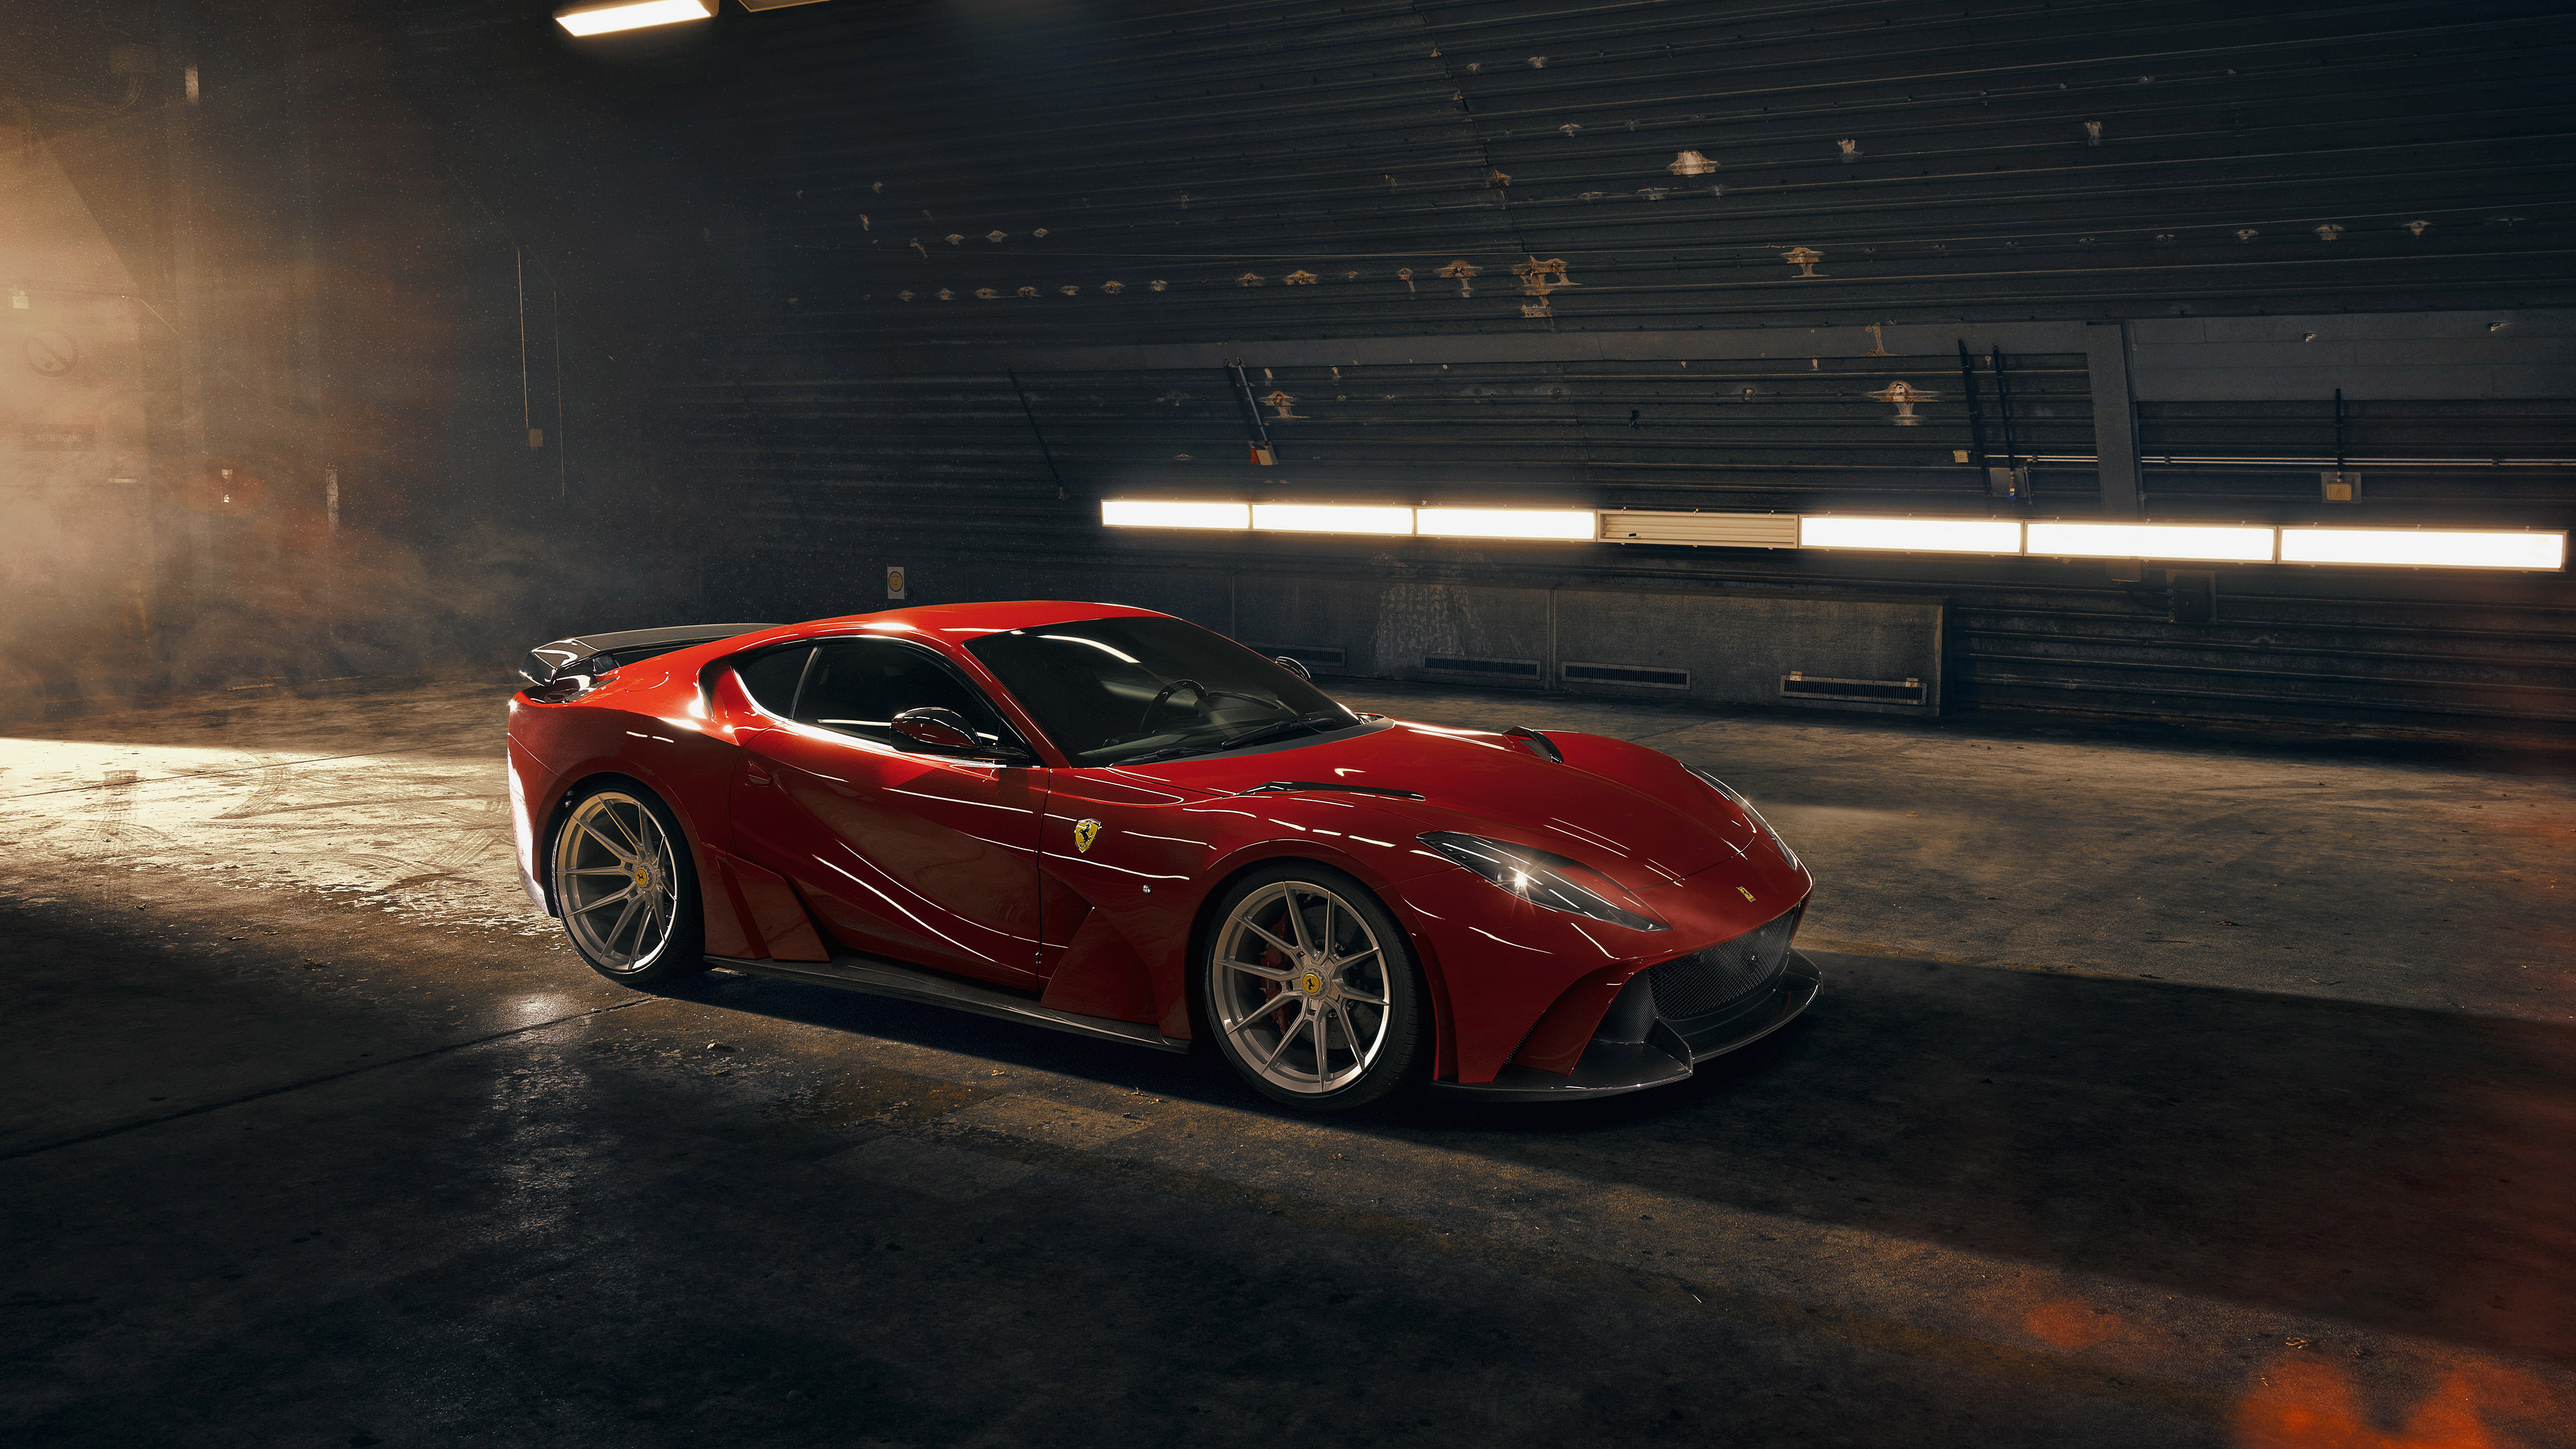 Preview Cars: Marco717